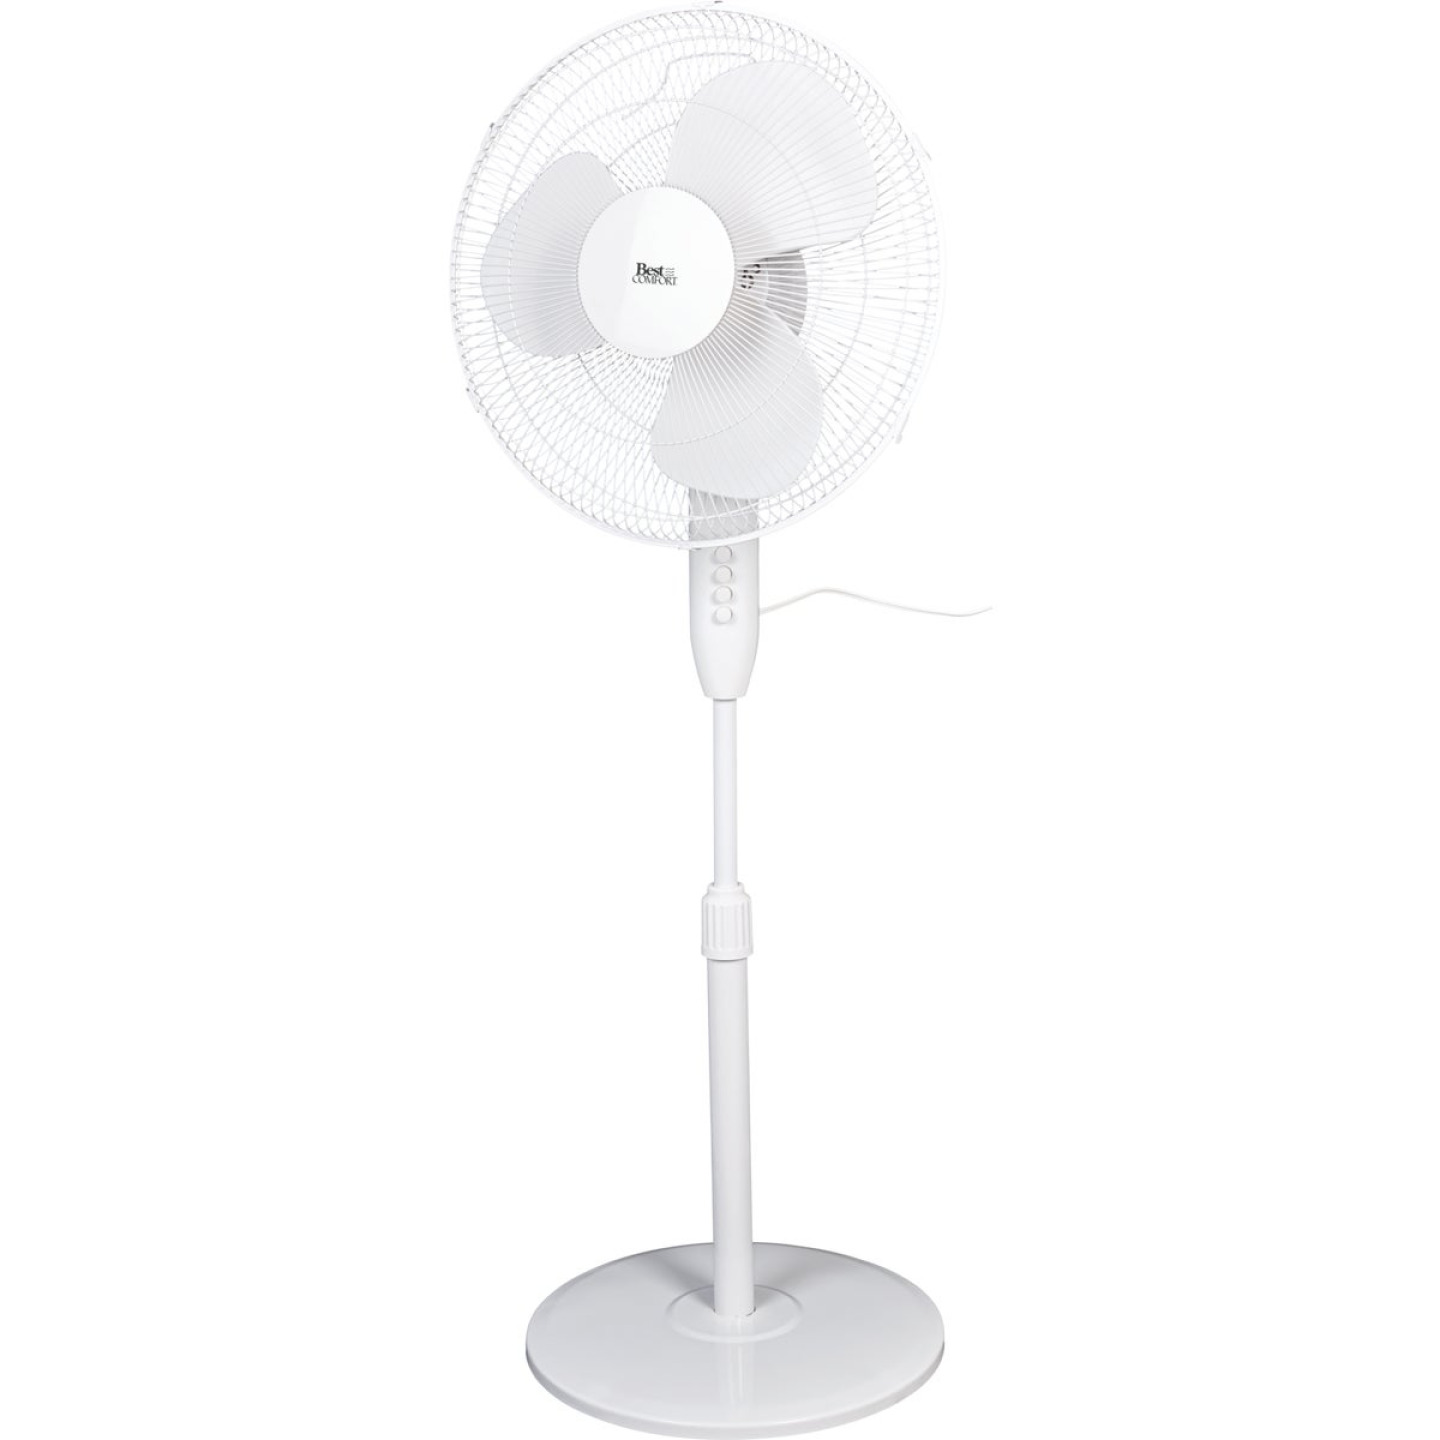 Best Comfort 16 In. 3-Speed Extends to 49 In. H. White Oscillating Pedestal Fan Image 2